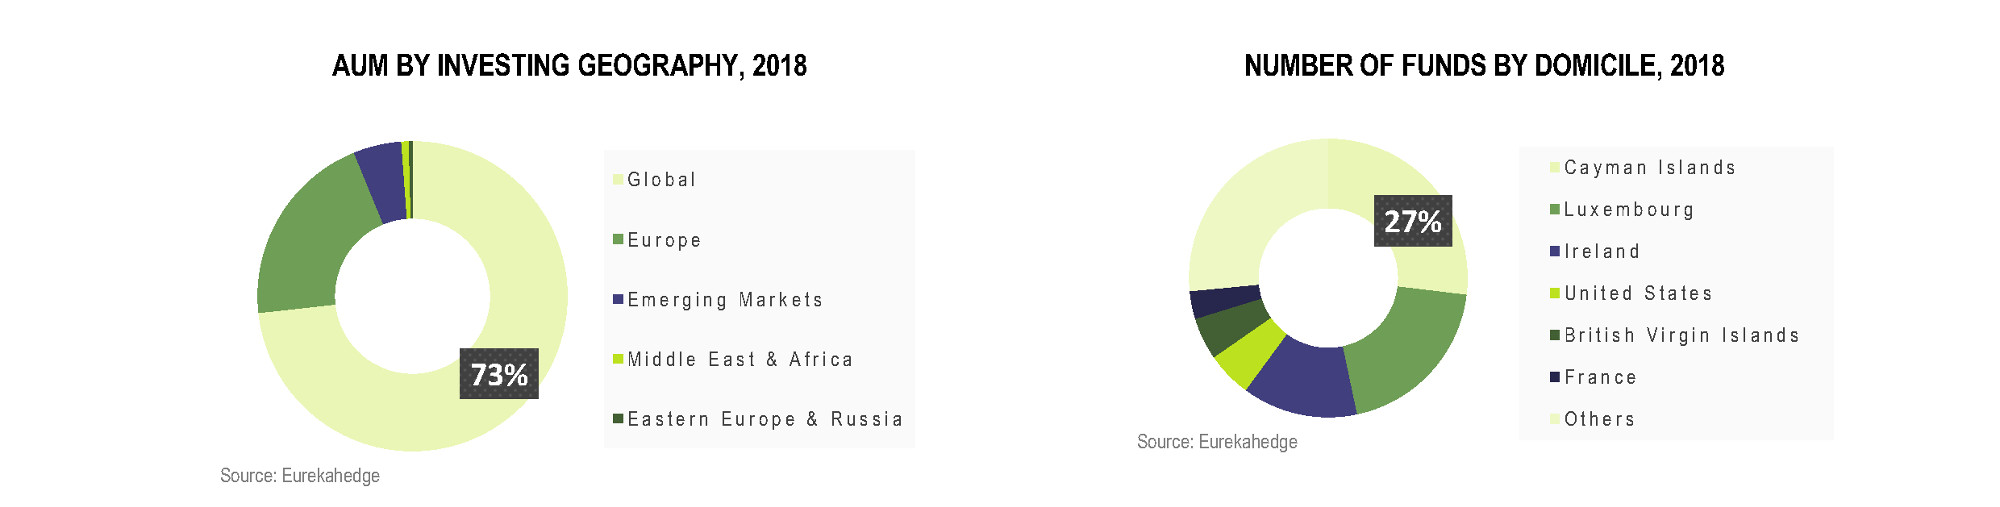 European Hedge Funds Infographic July 2018 - aum by investing geography, number of funds by domicile